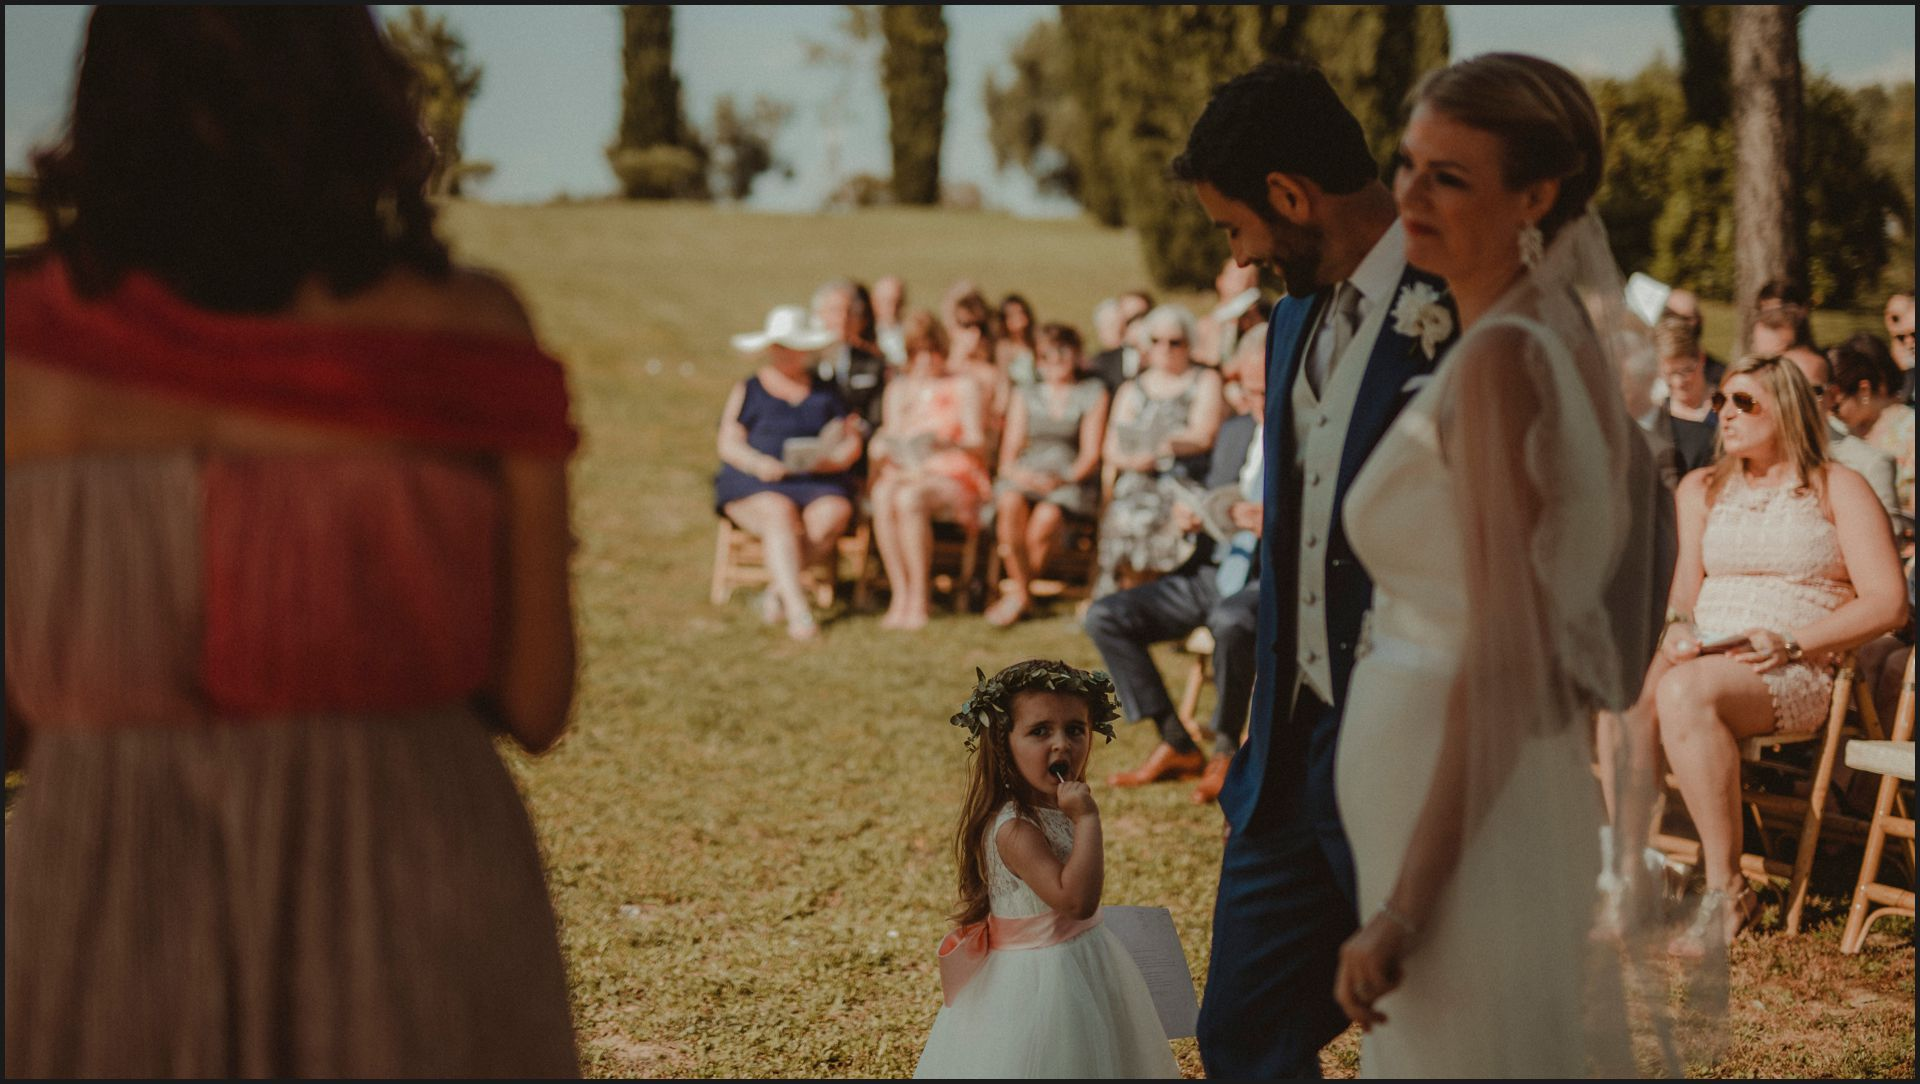 tenuta di canonica, umbria, wedding, ceremony, country, bride, groom, kid, funny